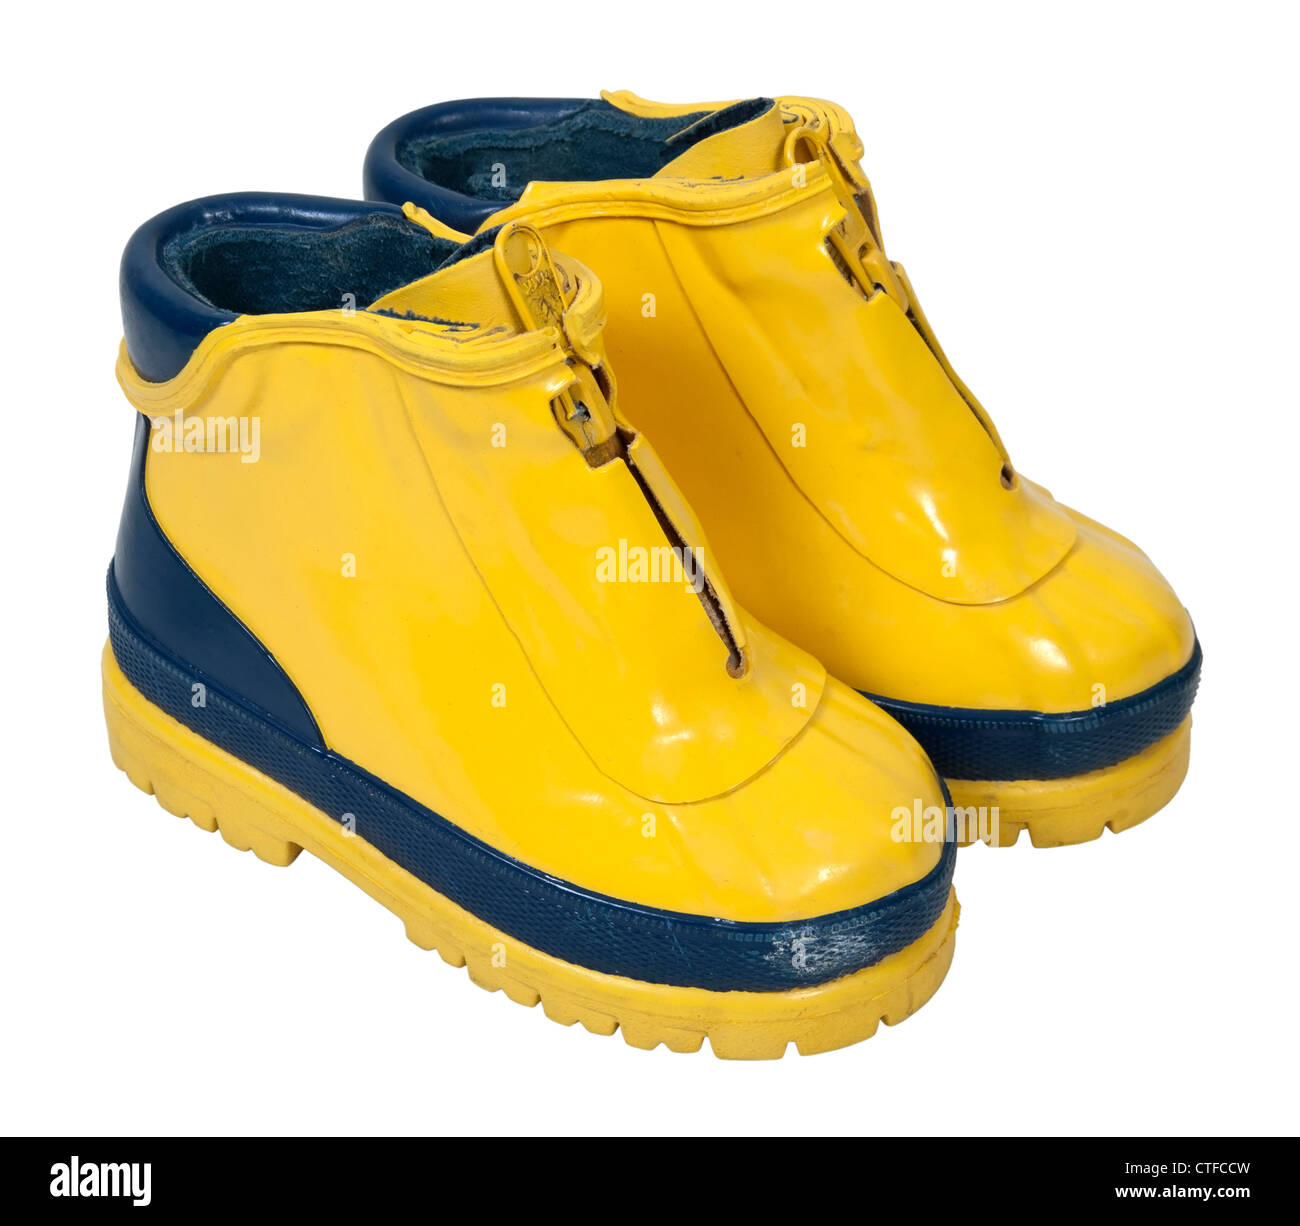 Yellow rubber boots to be worn on the feet to keep them dry - path included - Stock Image